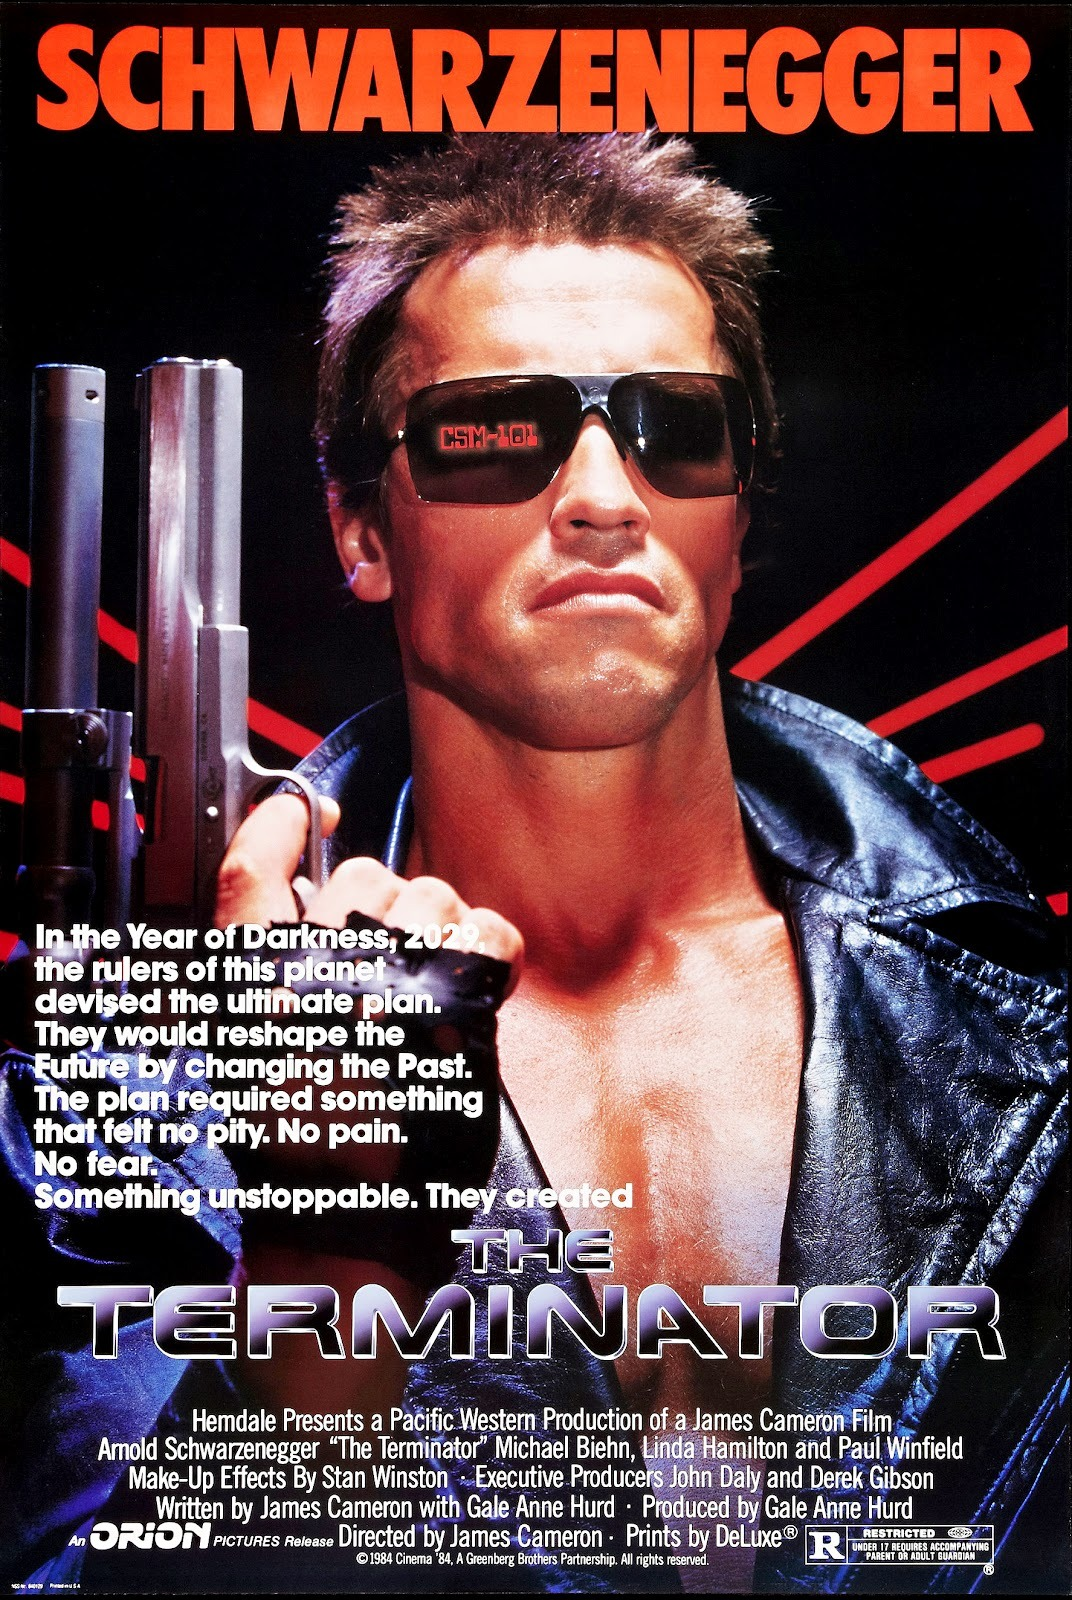 BACK IN THE DAY |10/26/84| The movie, Terminator, is released in theaters.